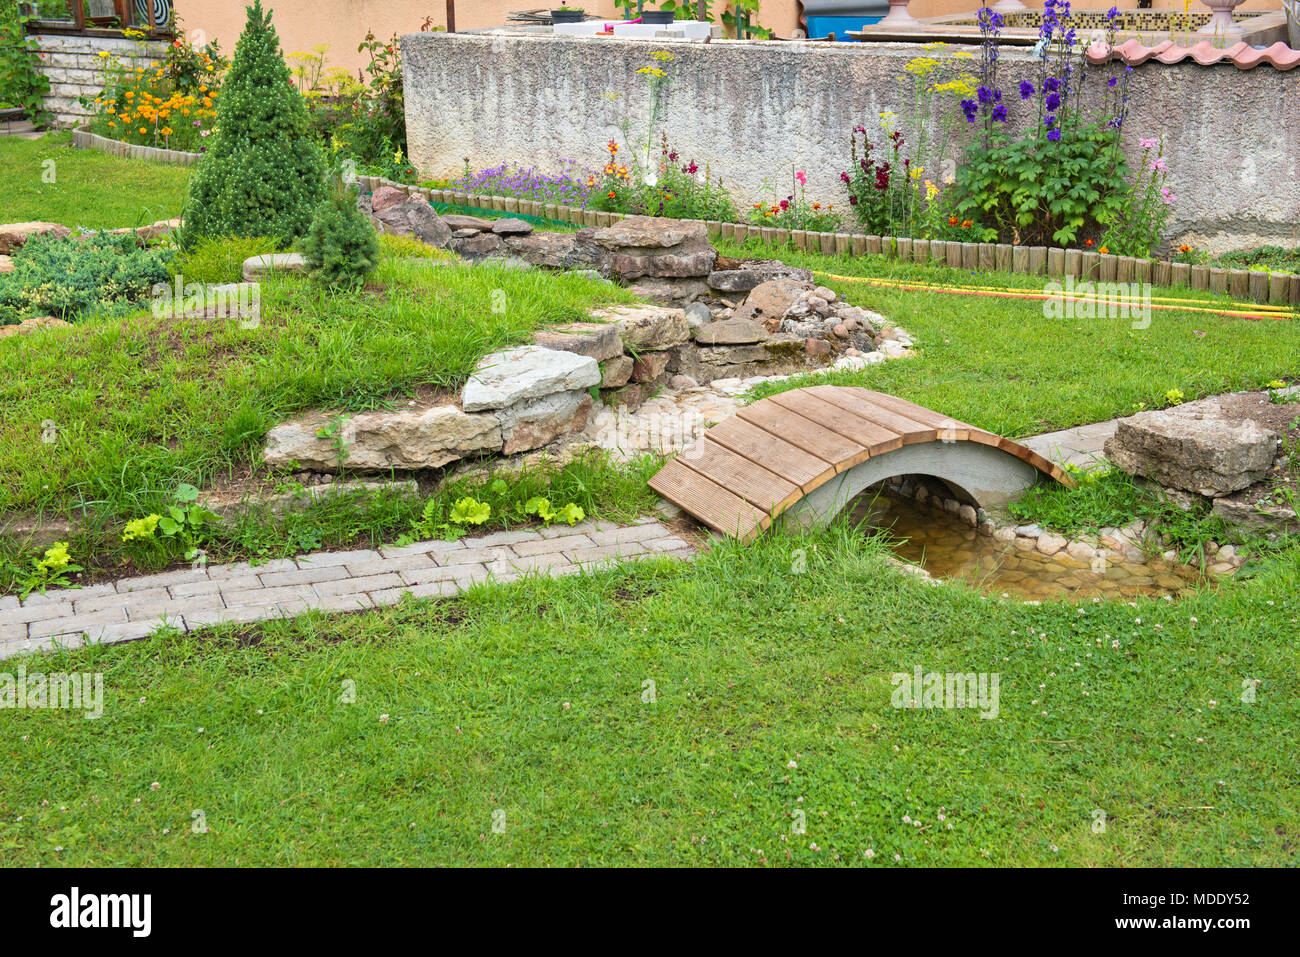 Modern Garden Design Rock Garden With Pond In Summer Stock Photo Alamy